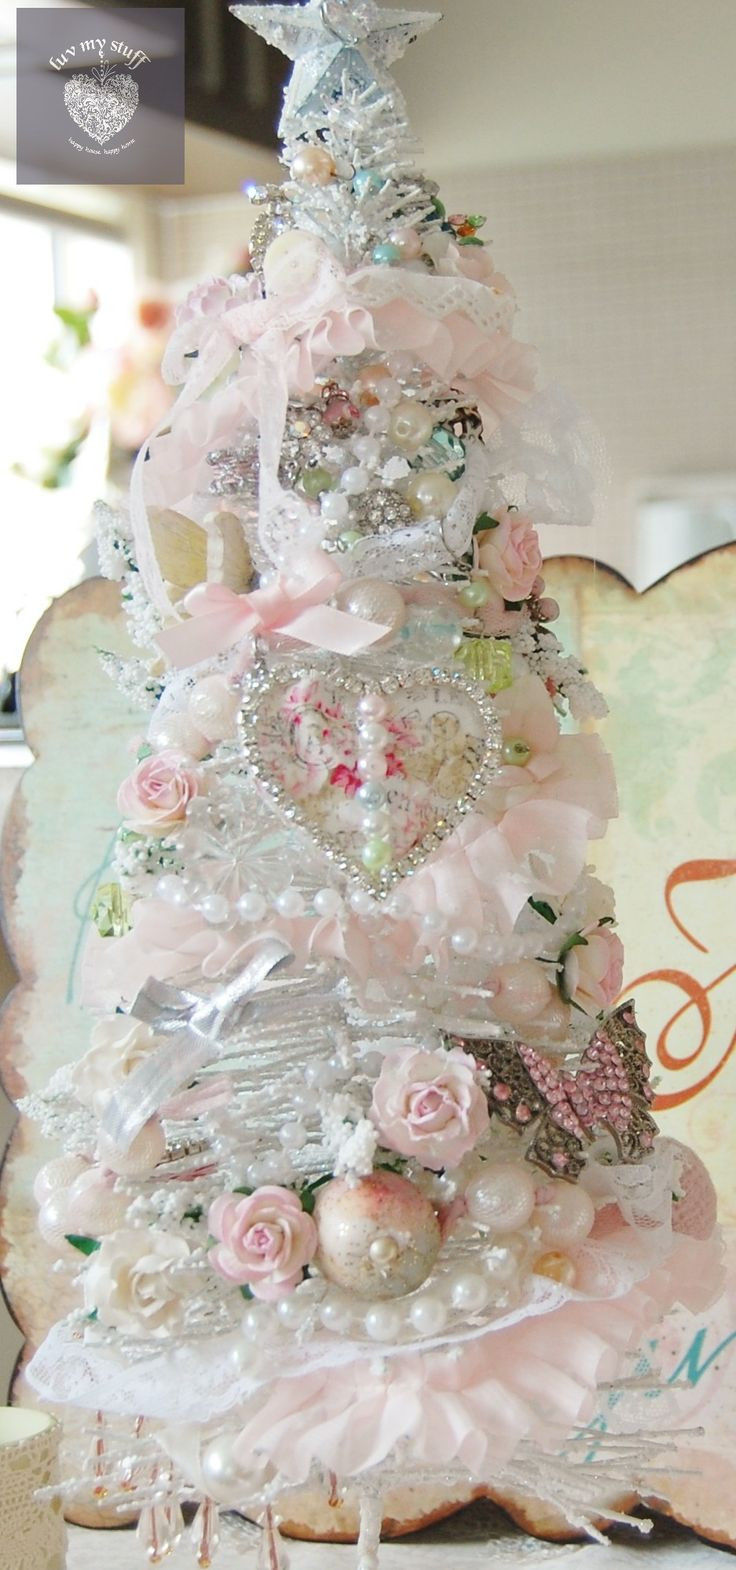 Best ideas about Shabby Chic Christmas . Save or Pin 1000 images about Christmas on Pinterest Now.